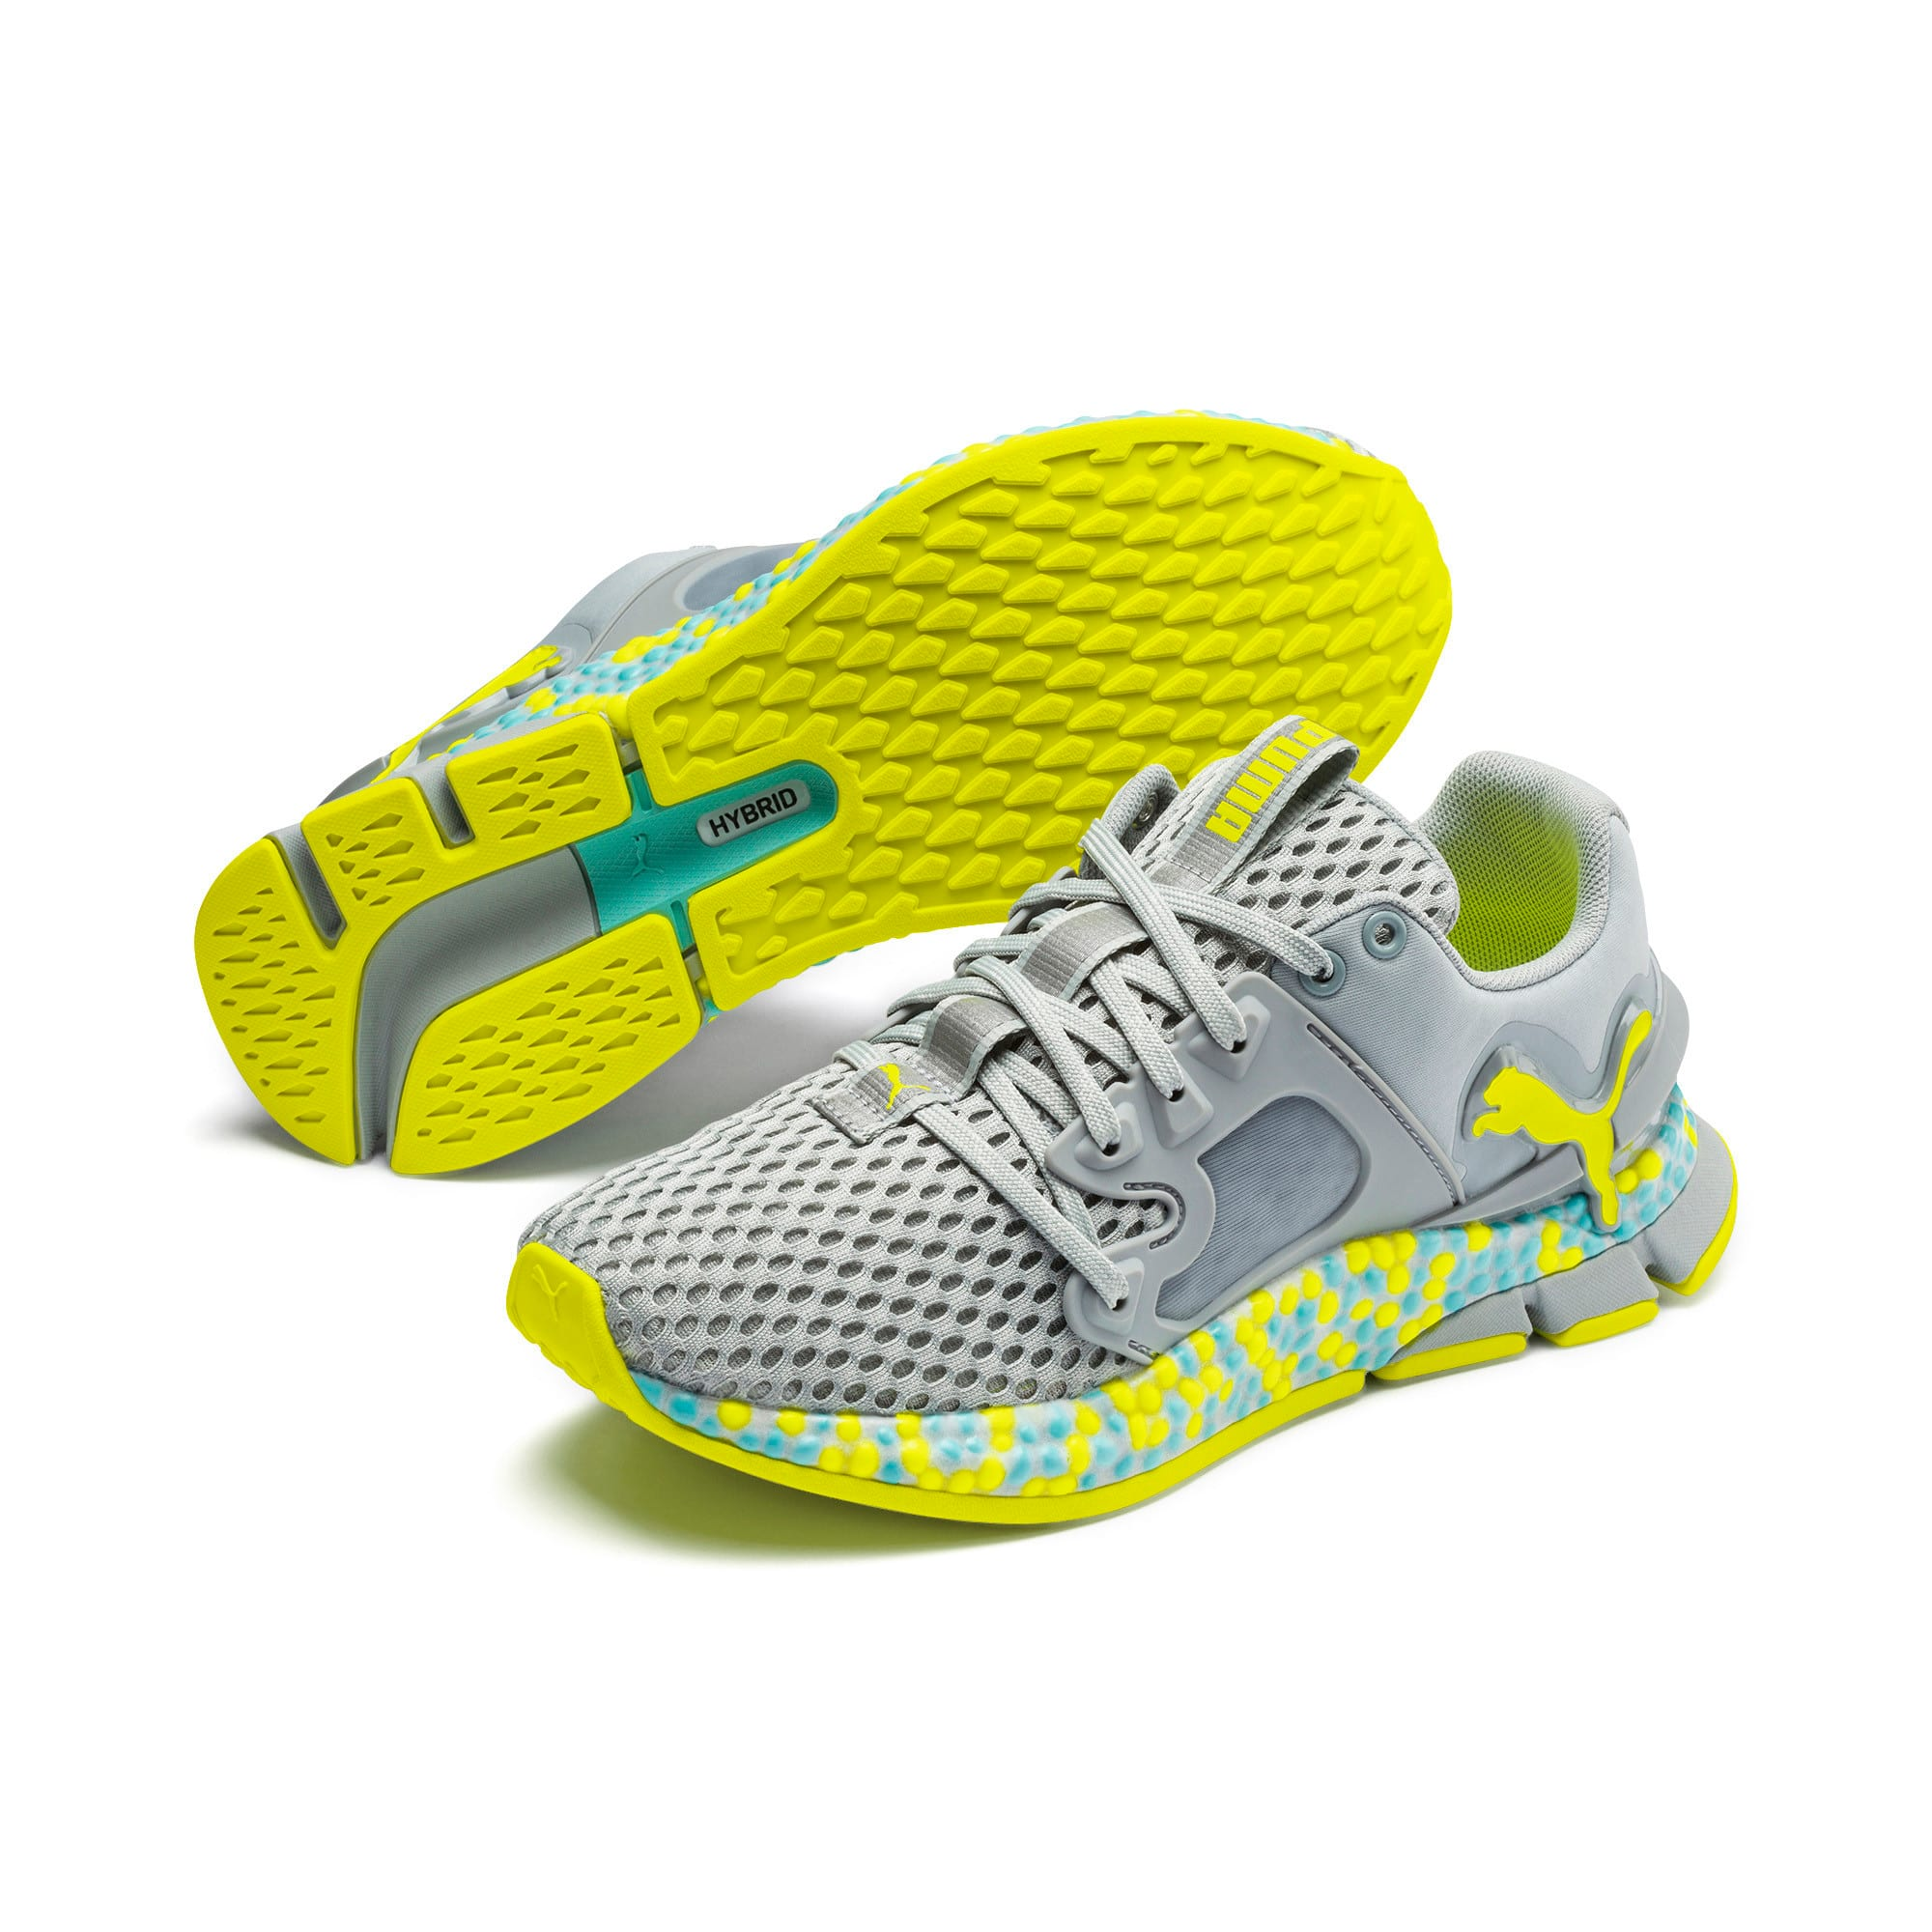 HYBRID Sky Women's Running Shoes, Quarry-Yellow Alert, large